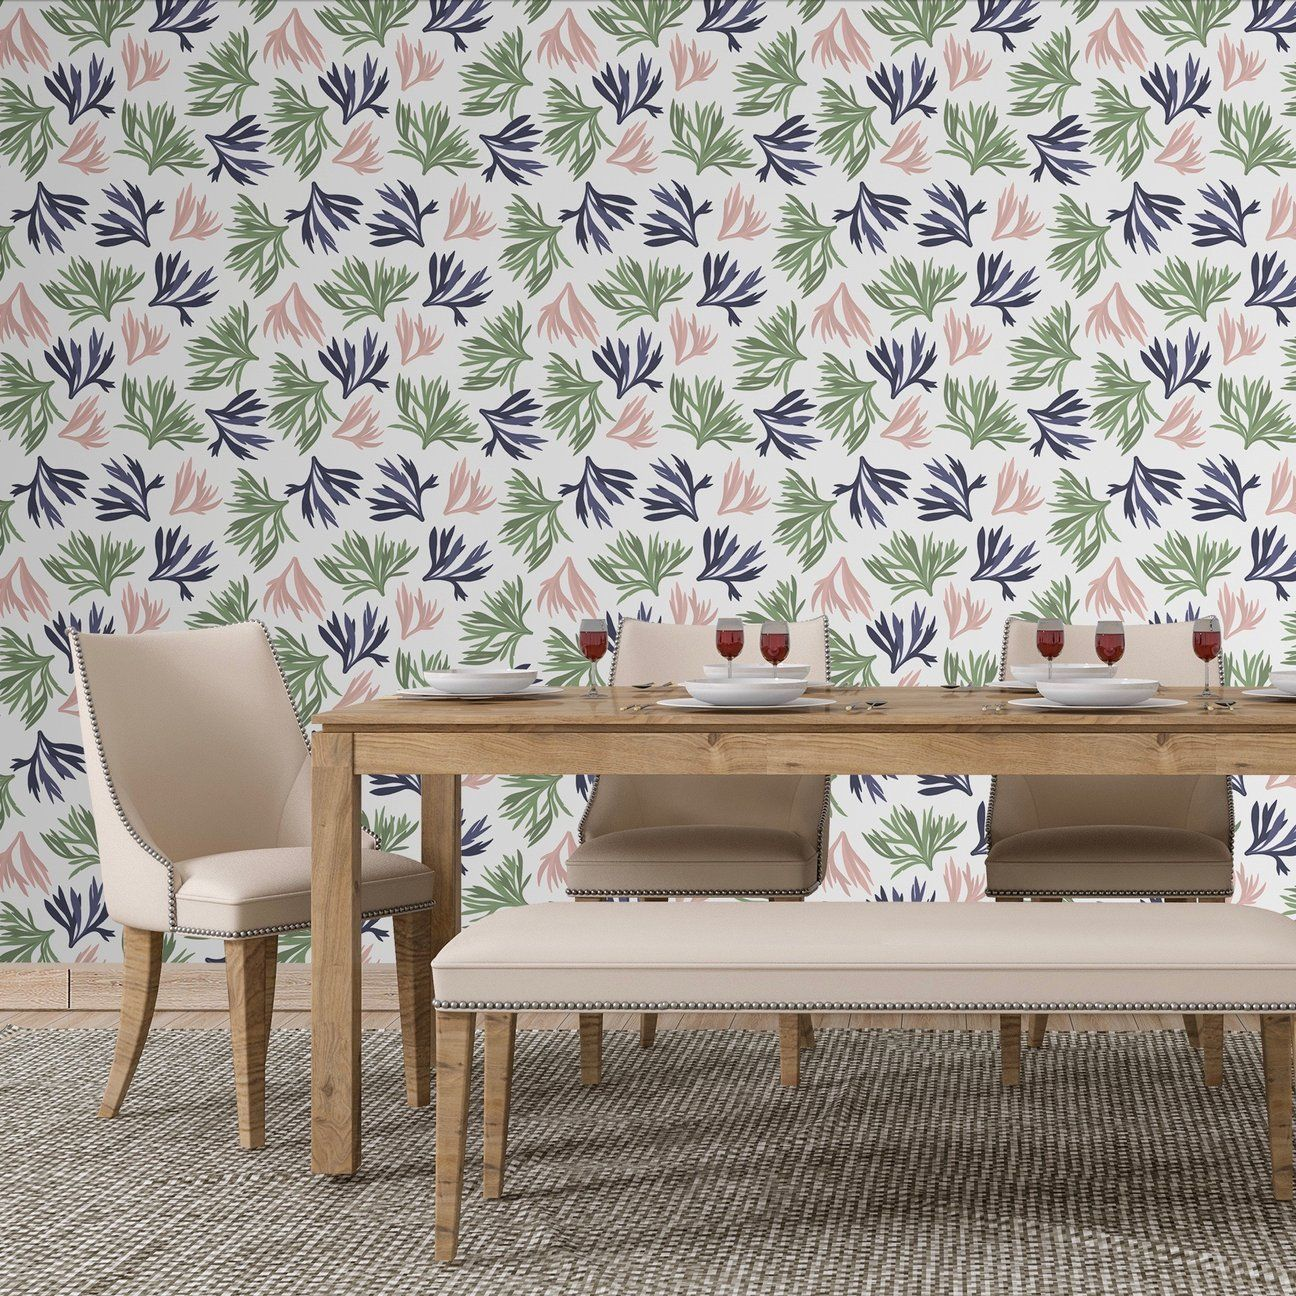 Preppy Coral Peel And Stick Wallpaper Reef Pattern Smooth Walls